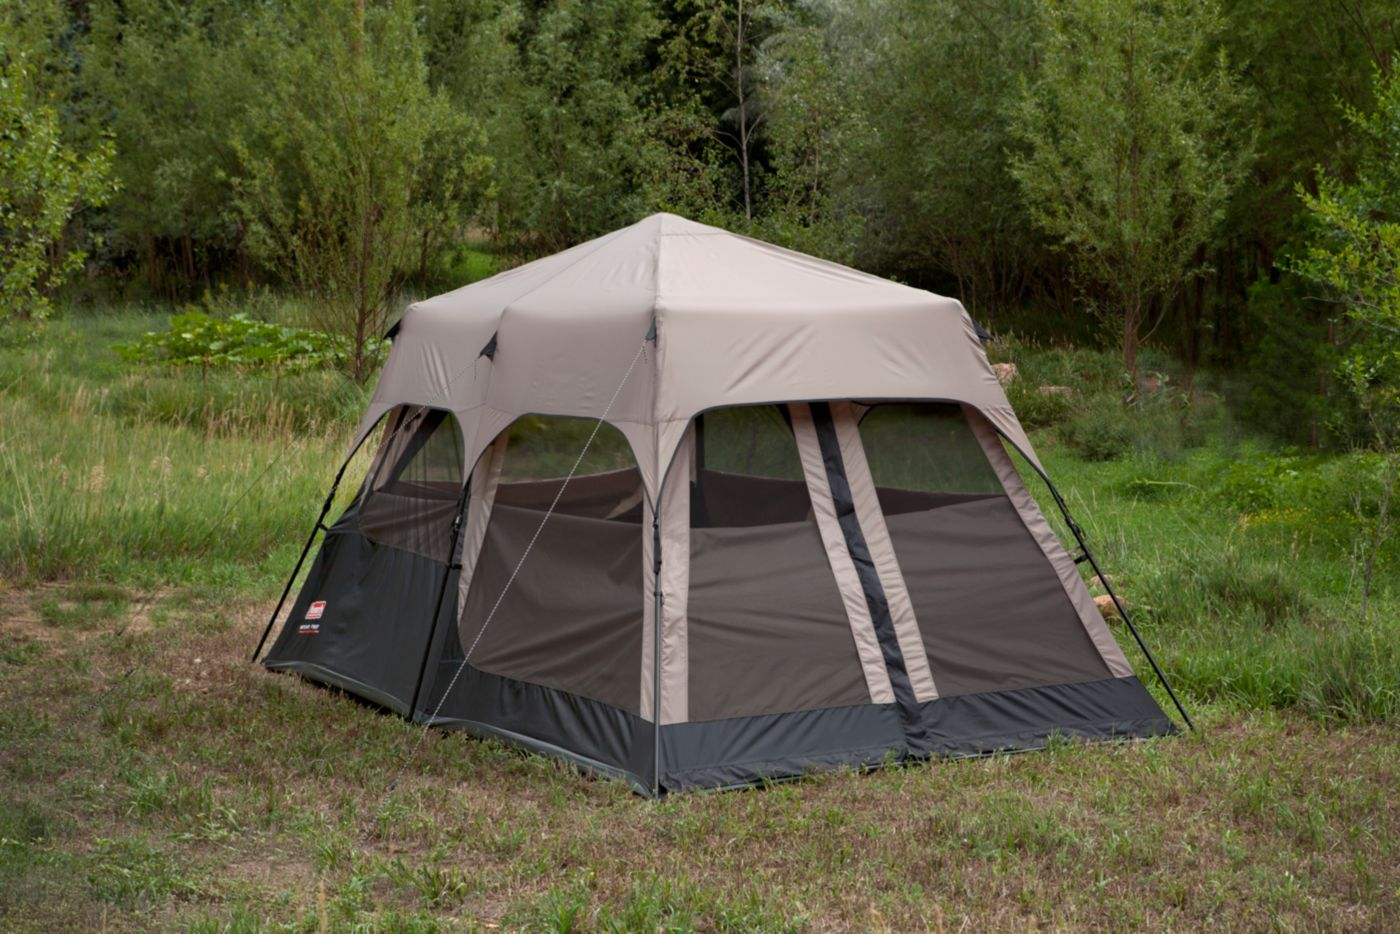 8-Person Instant Tent Rainfly Accessory image 2 ...  sc 1 st  Coleman & 8-Person Instant Tent Rainfly Accessory | Coleman